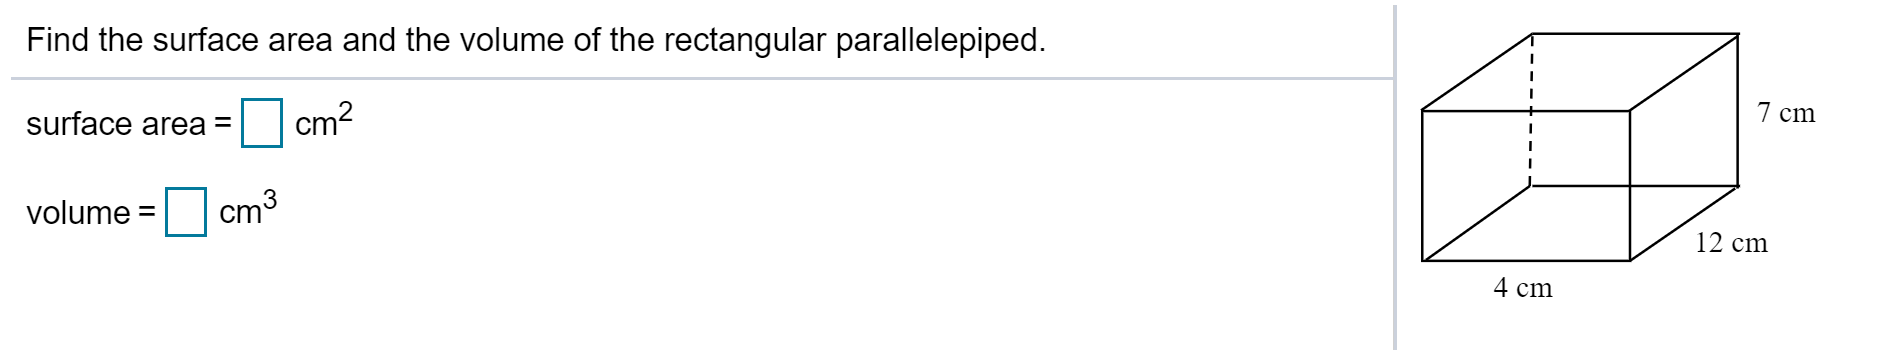 Find the surface area and the volume of the rectangular parallelepiped. cm2 7 cm surface area = volume = cm3 Ст3 12 cm 4 cm